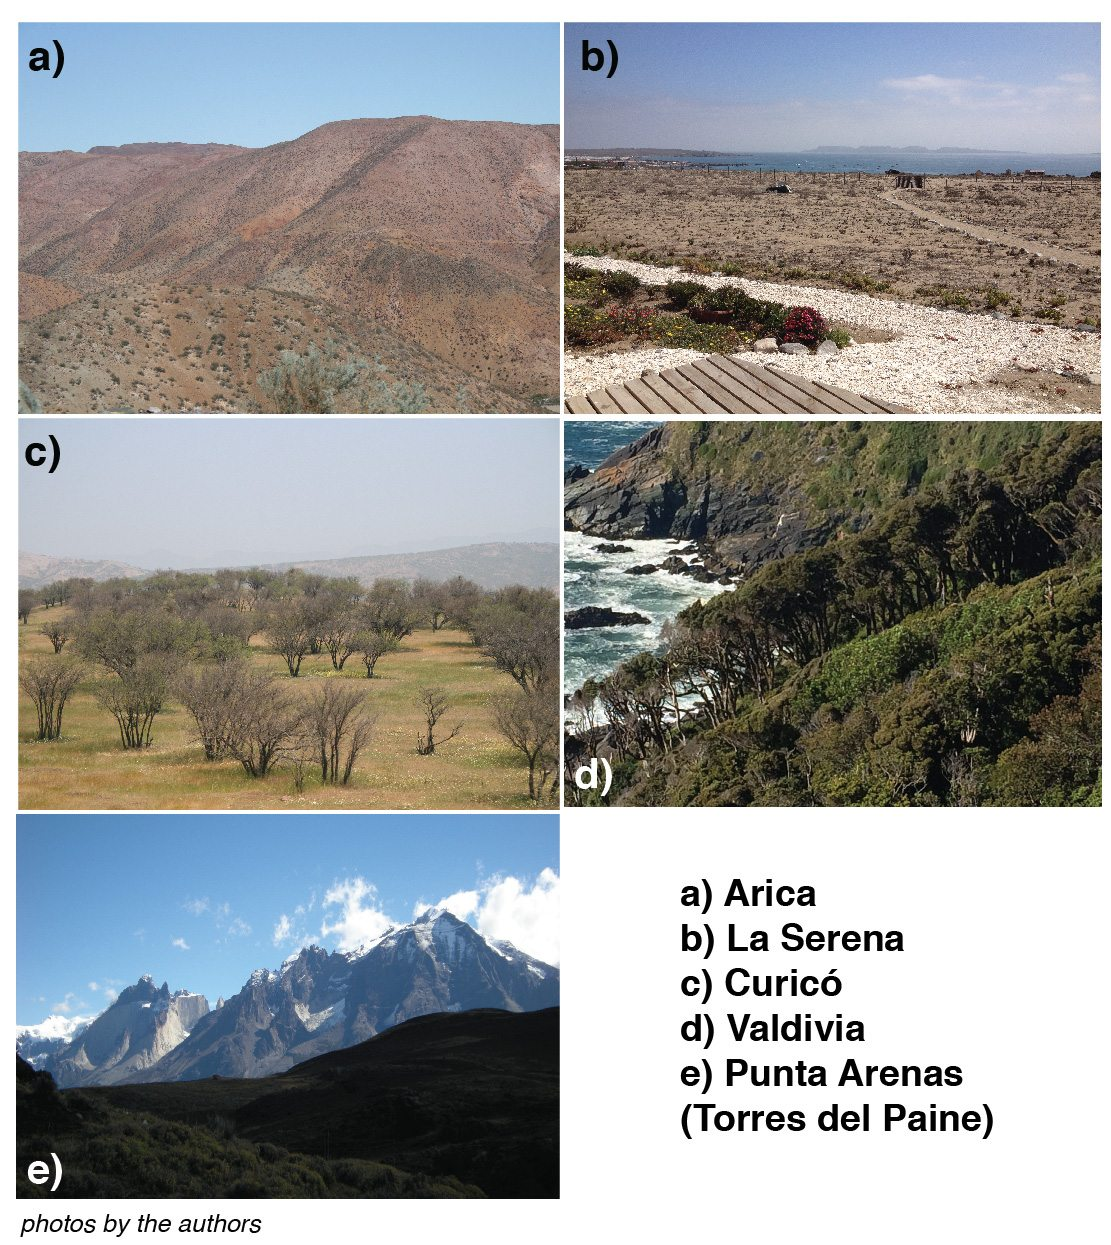 Climatic regions of Chile. Photo correspond to sections of the map above. Photos: Paula Villagra and Alvaro González